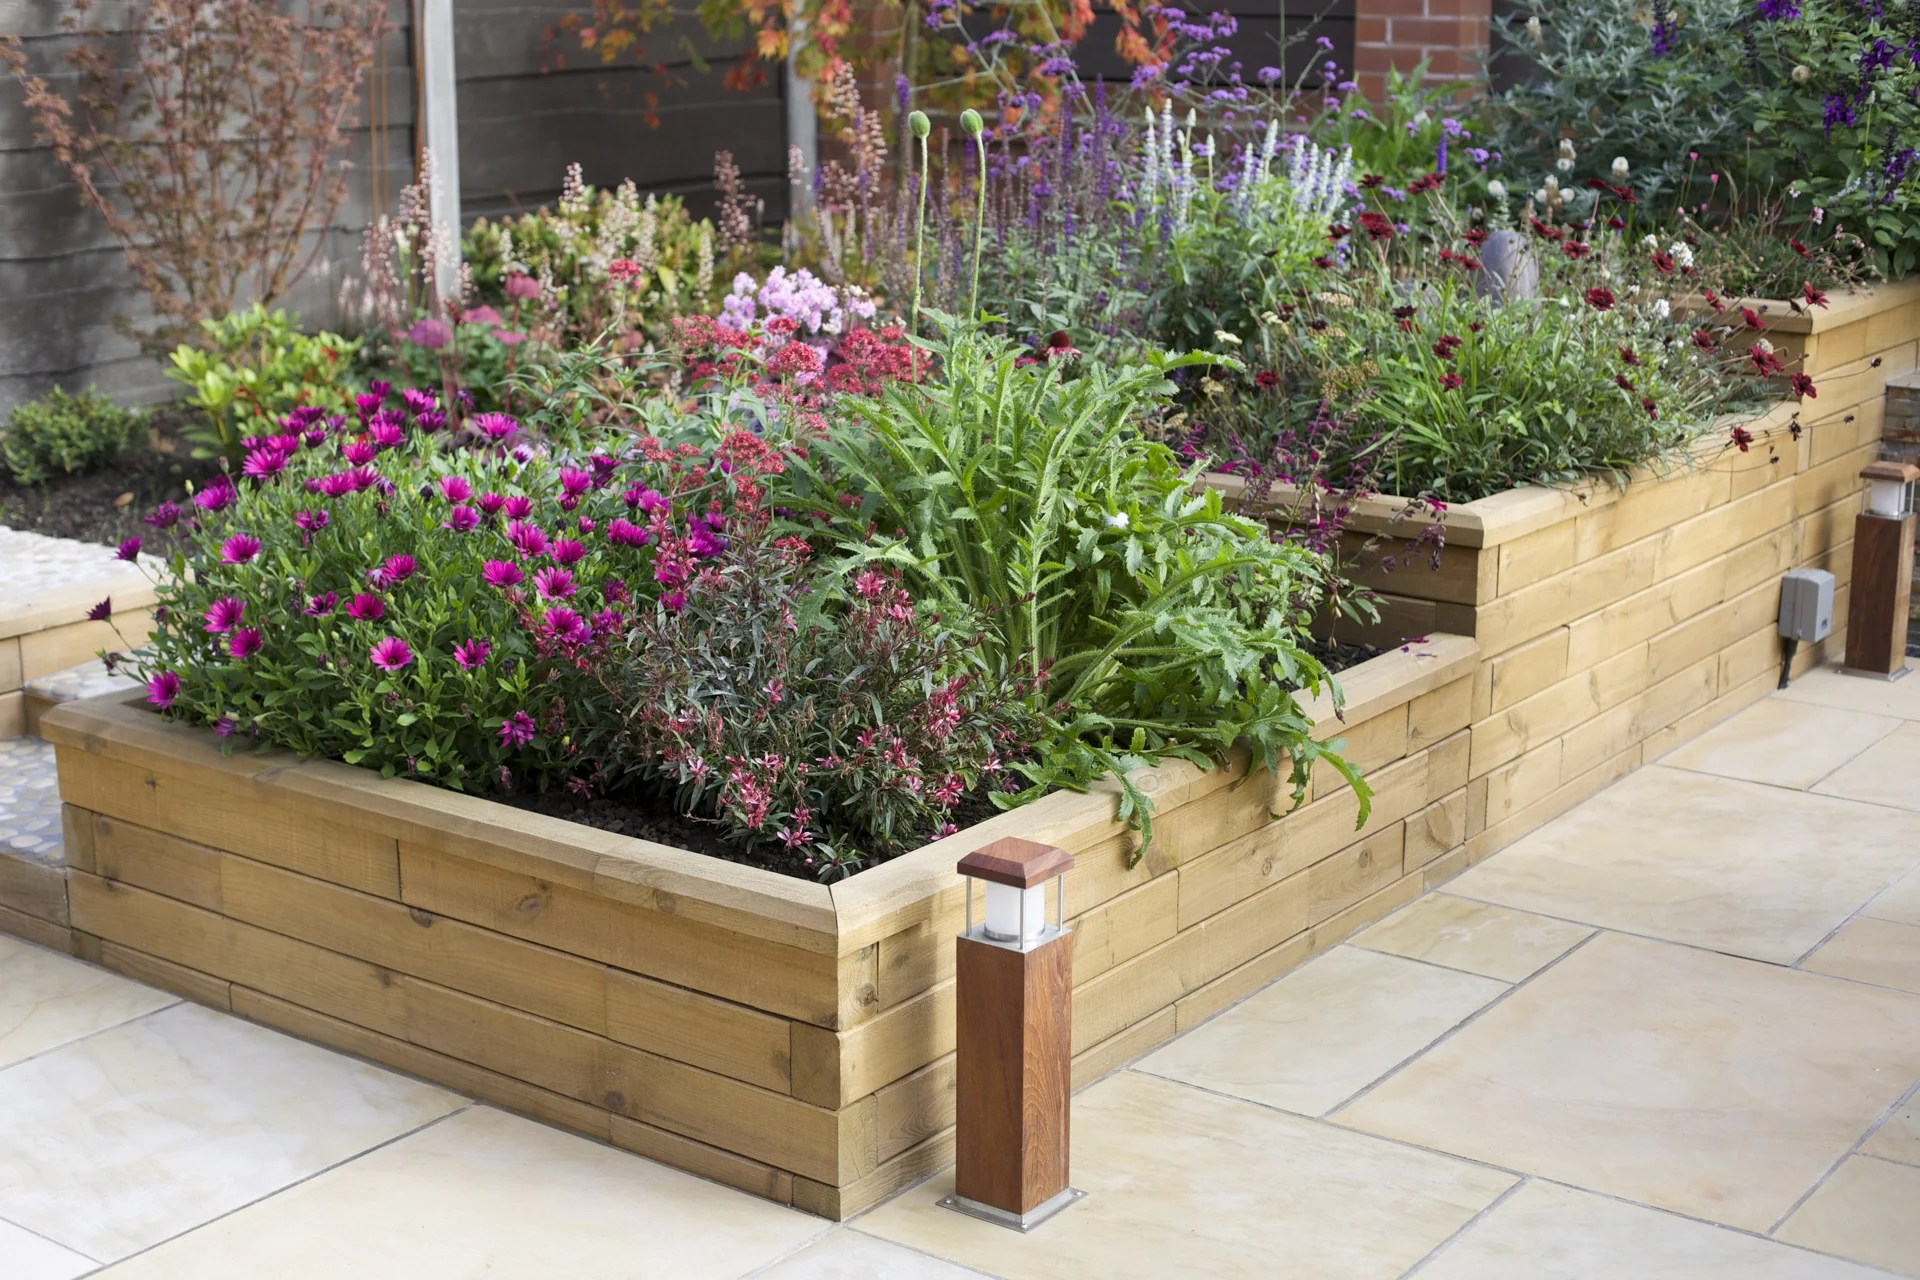 Using Railway Sleepers For Raised Vegetable Beds Woodblocx Woodblocx